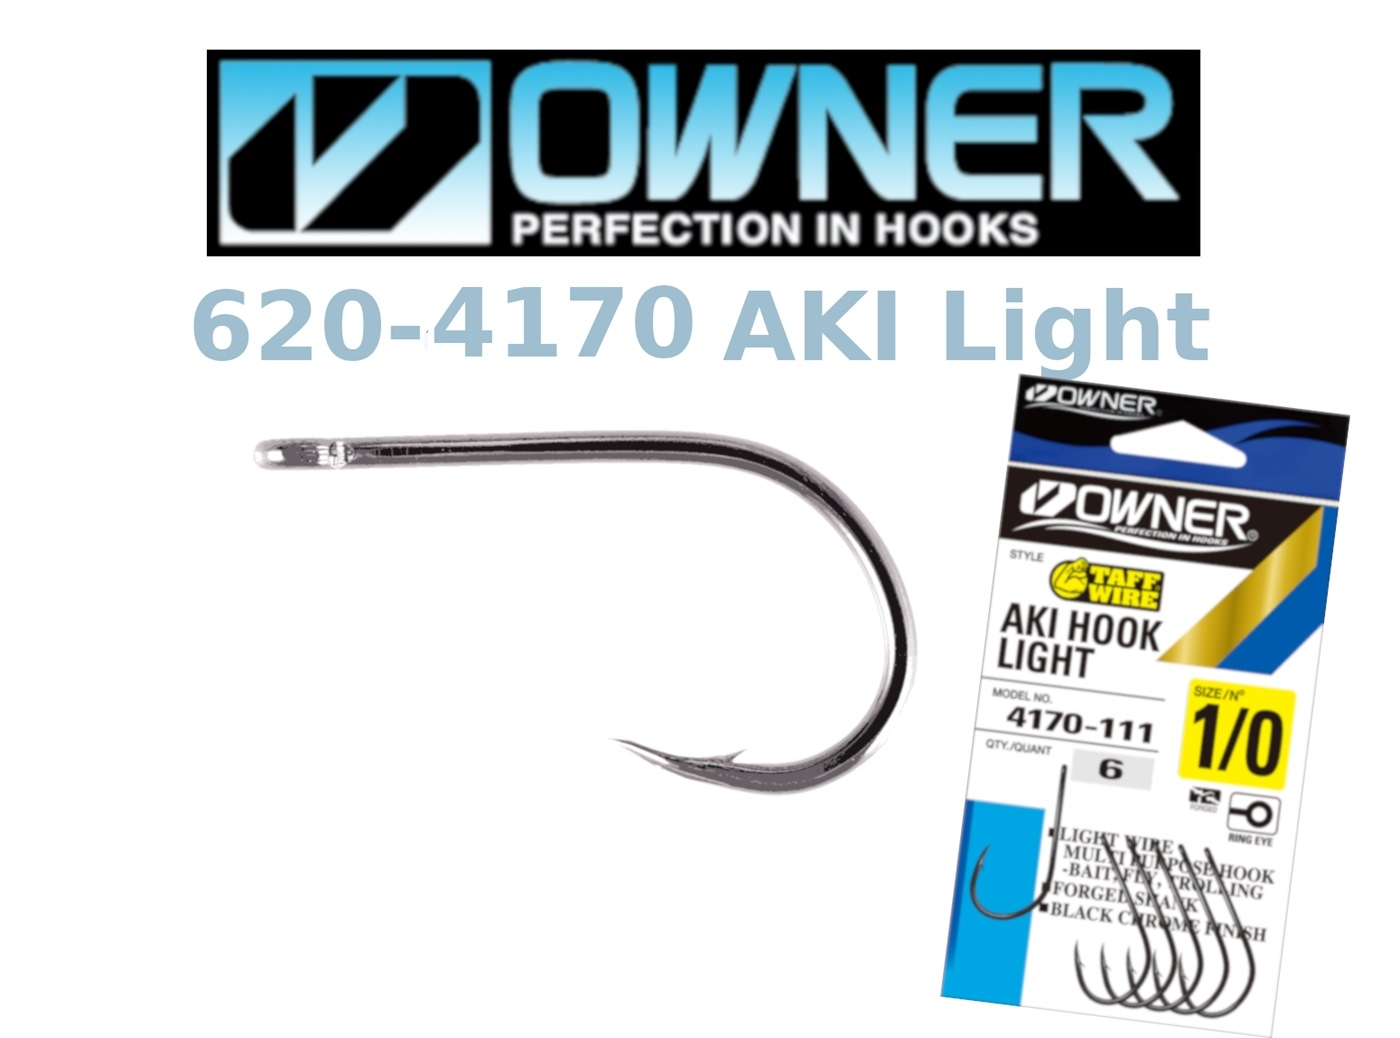 Owner Aki light 1/0